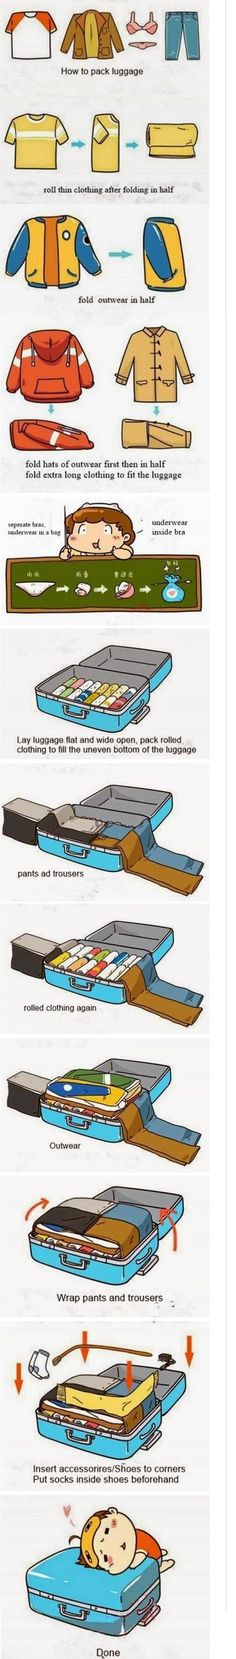 How to pack luggage